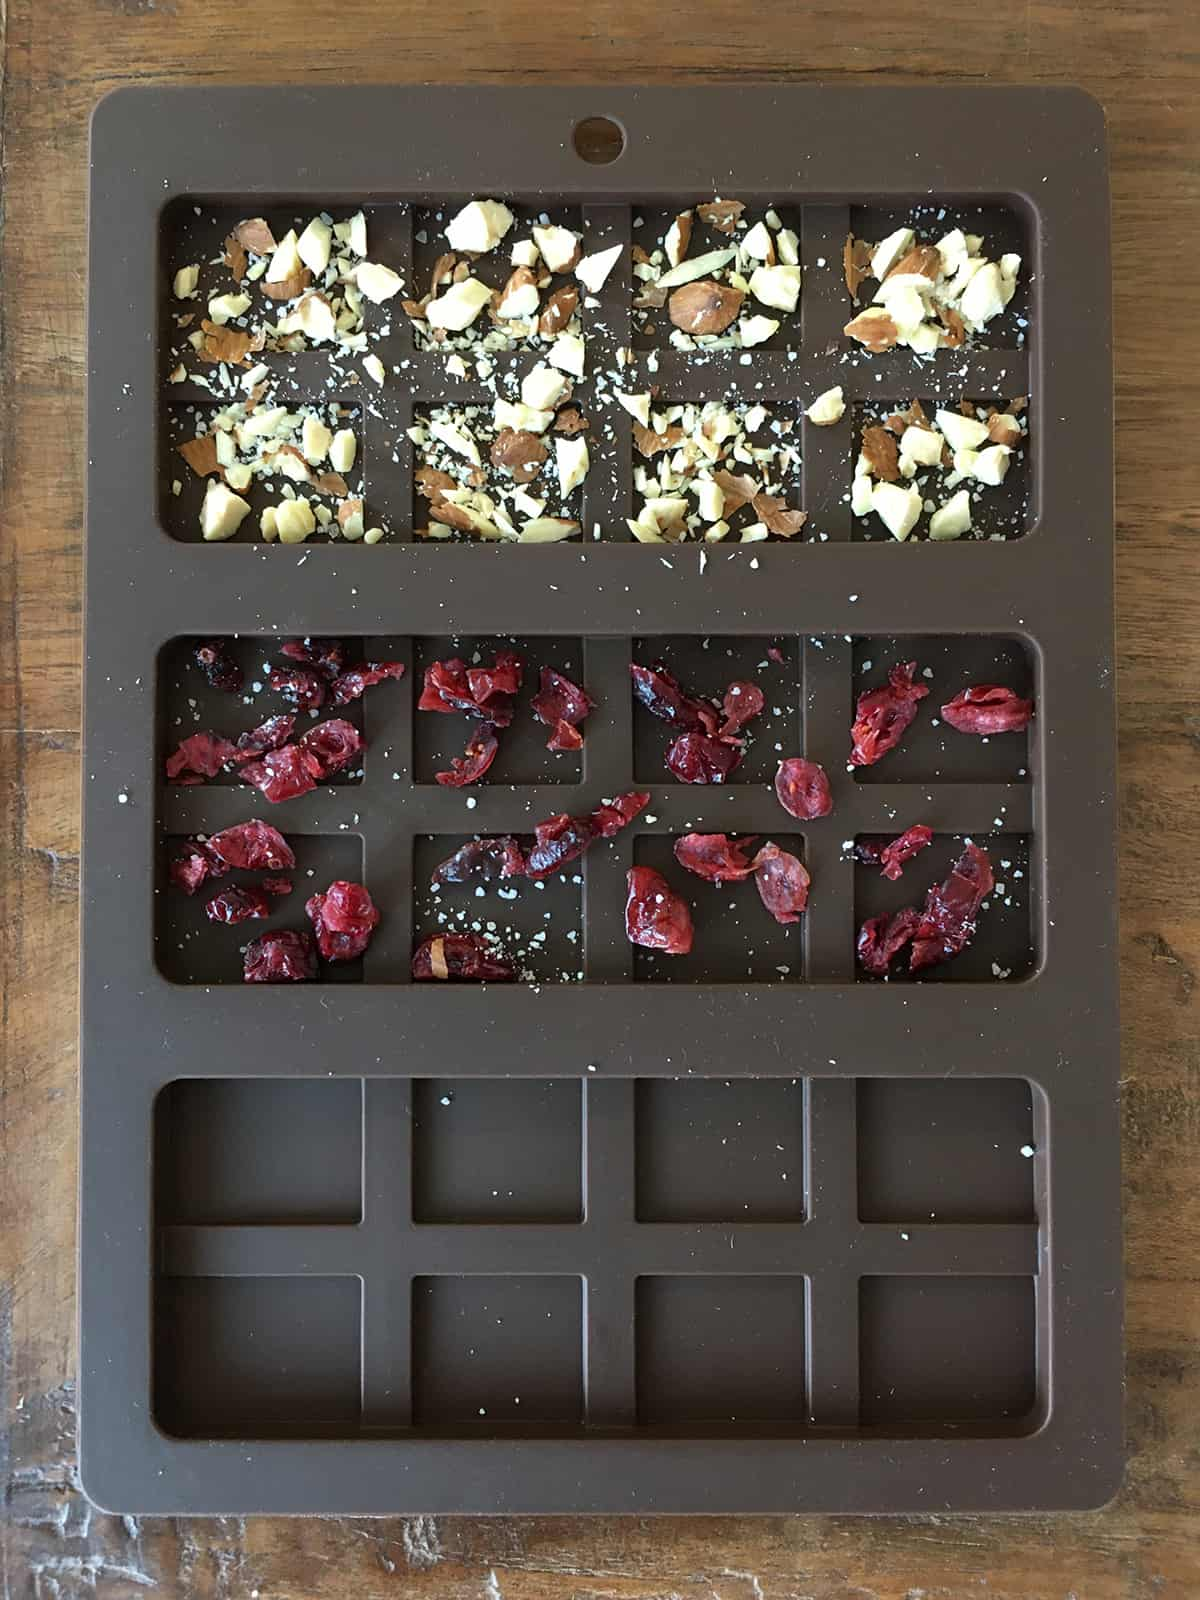 Chocolate bar mold partially filled with chopped almonds, dried cranberries and sea salt